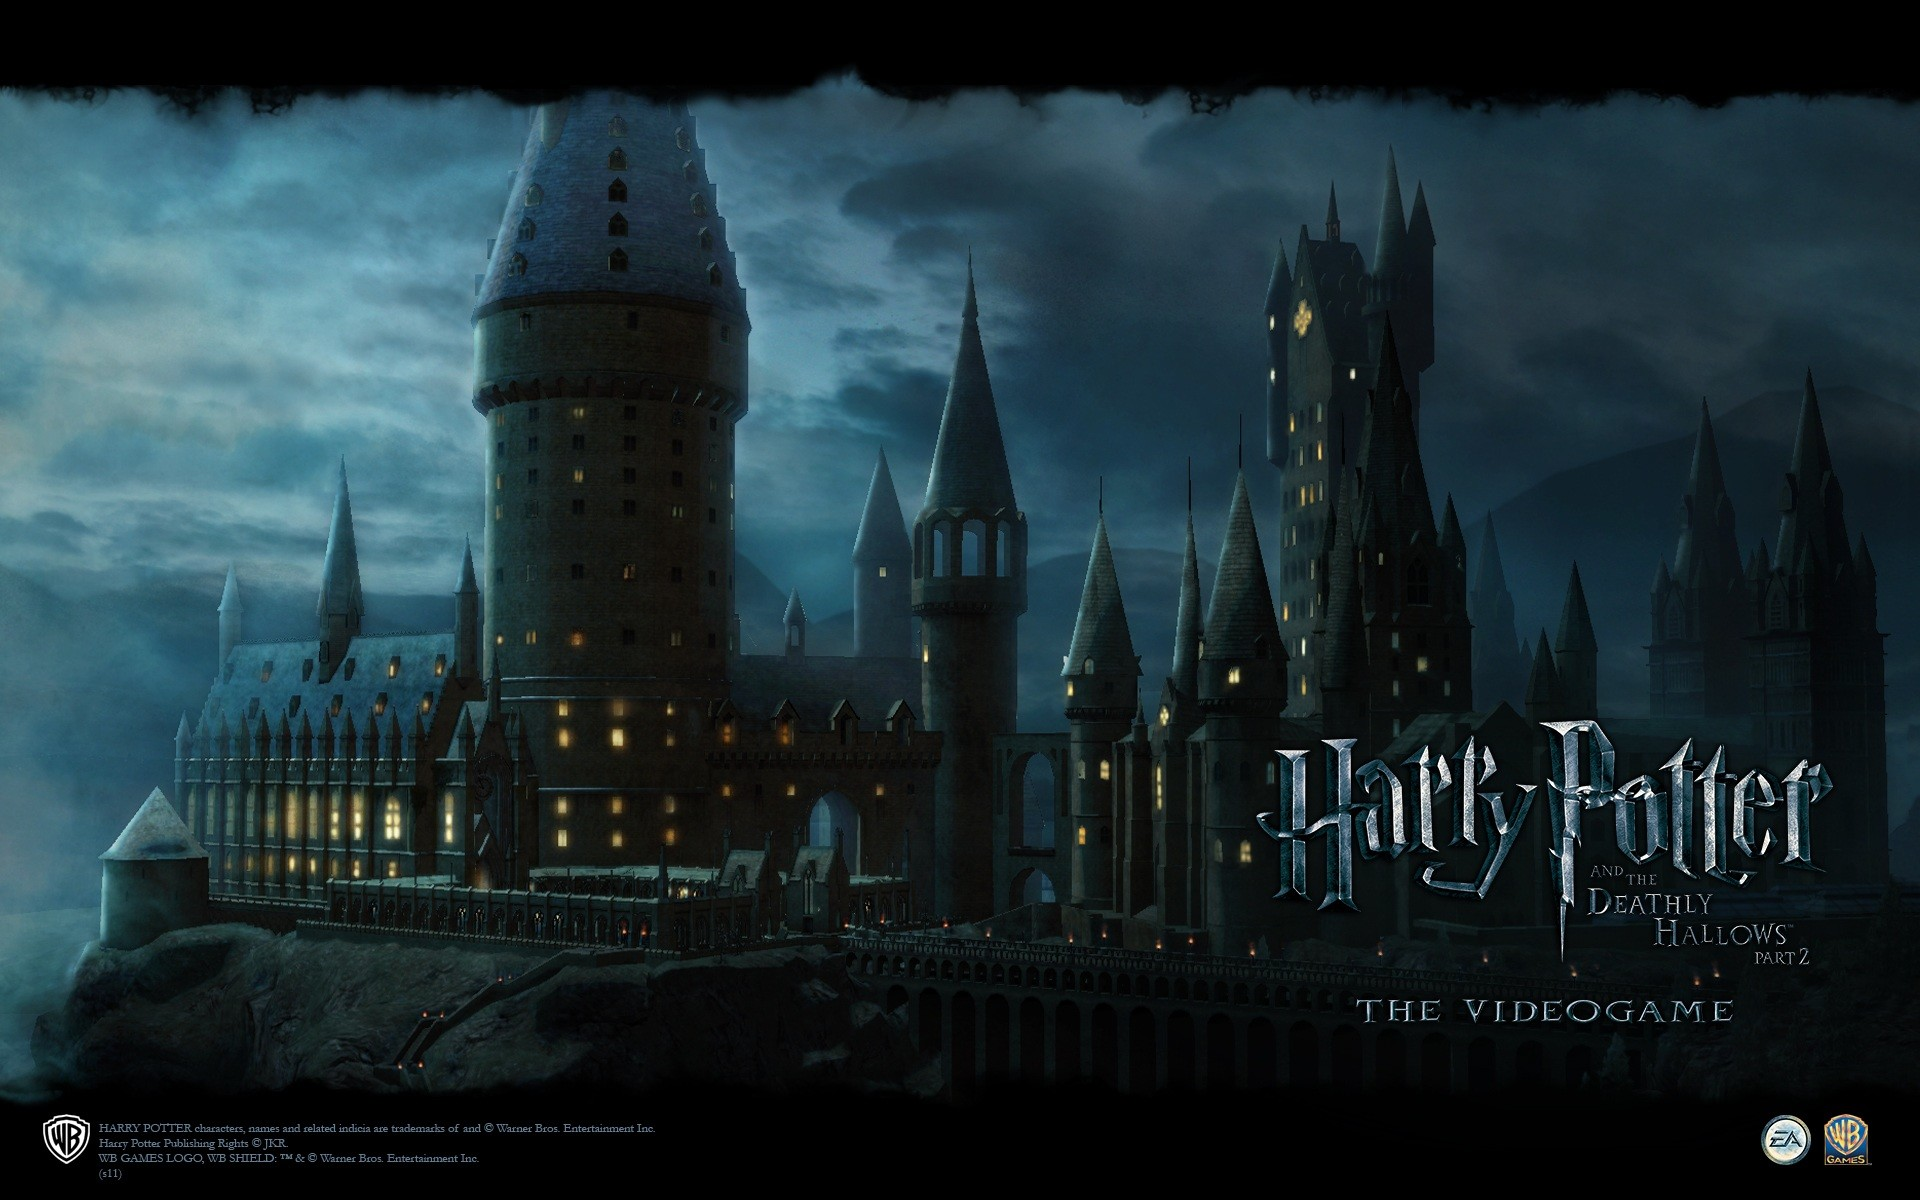 Good Wallpaper Harry Potter Twitter - 656477-best-harry-potter-twitter-background-1920x1200  Perfect Image Reference_707155.jpg